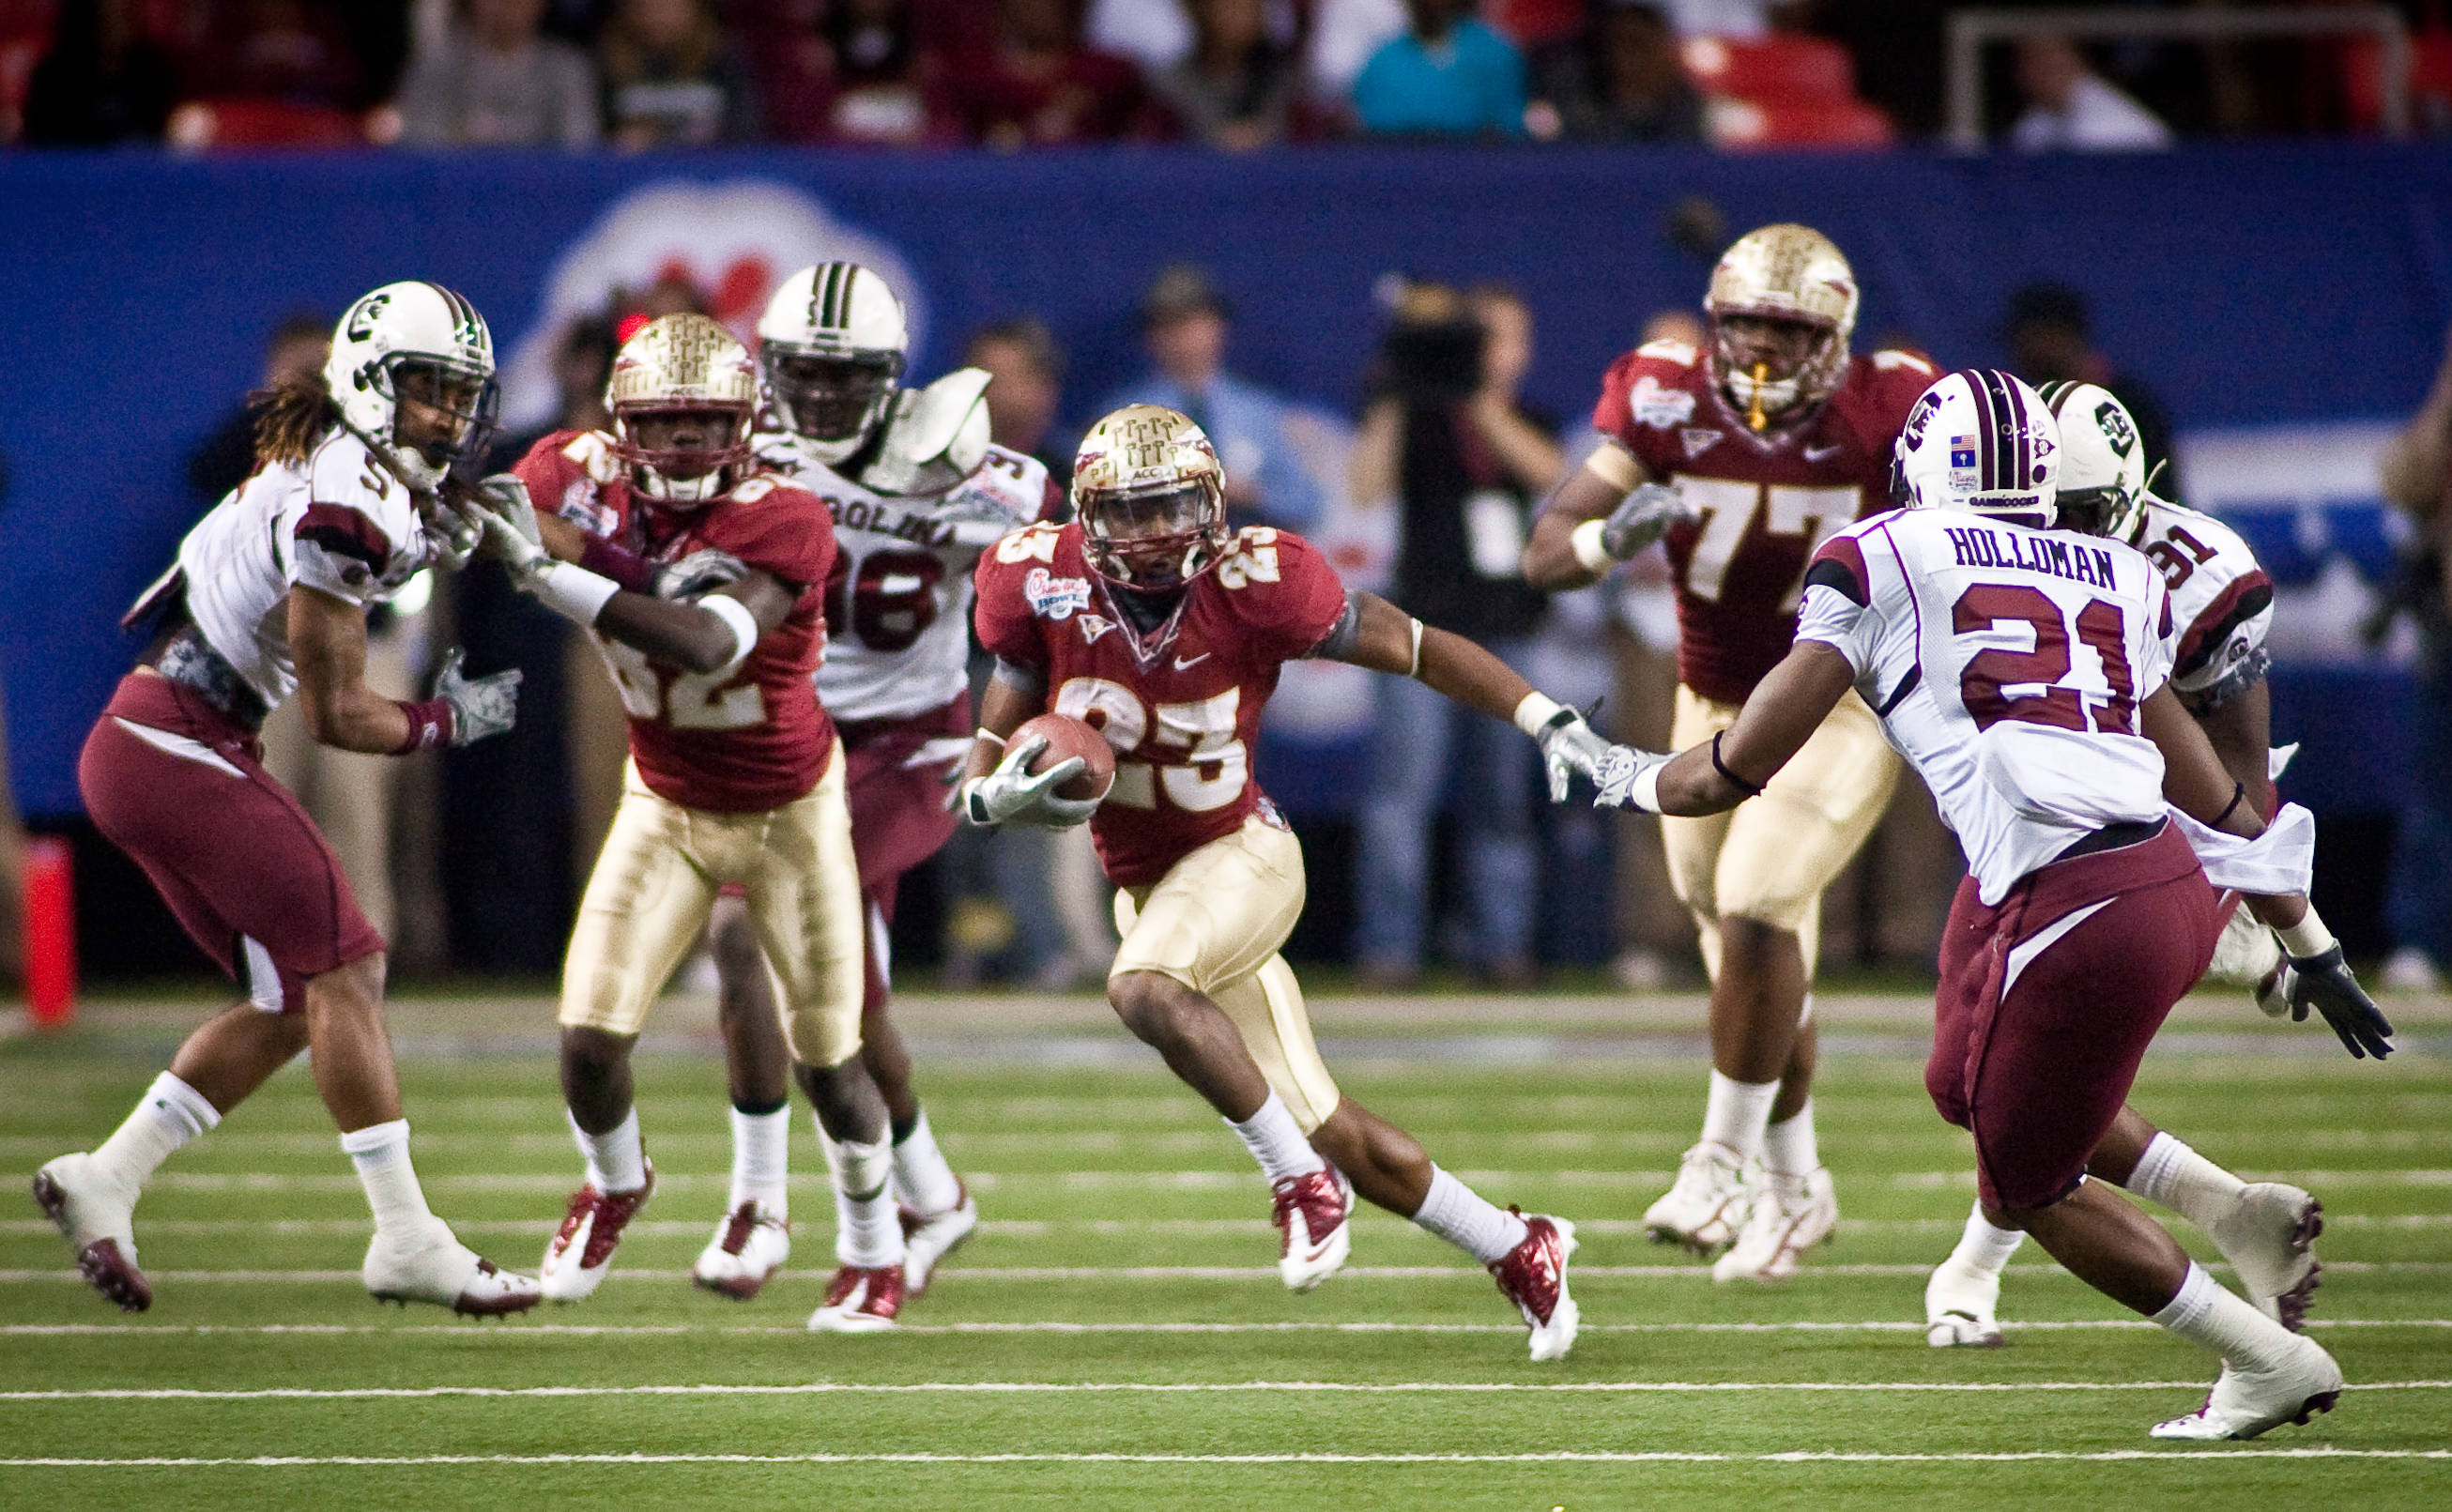 Chris Thompson (23) with a big run up the middle